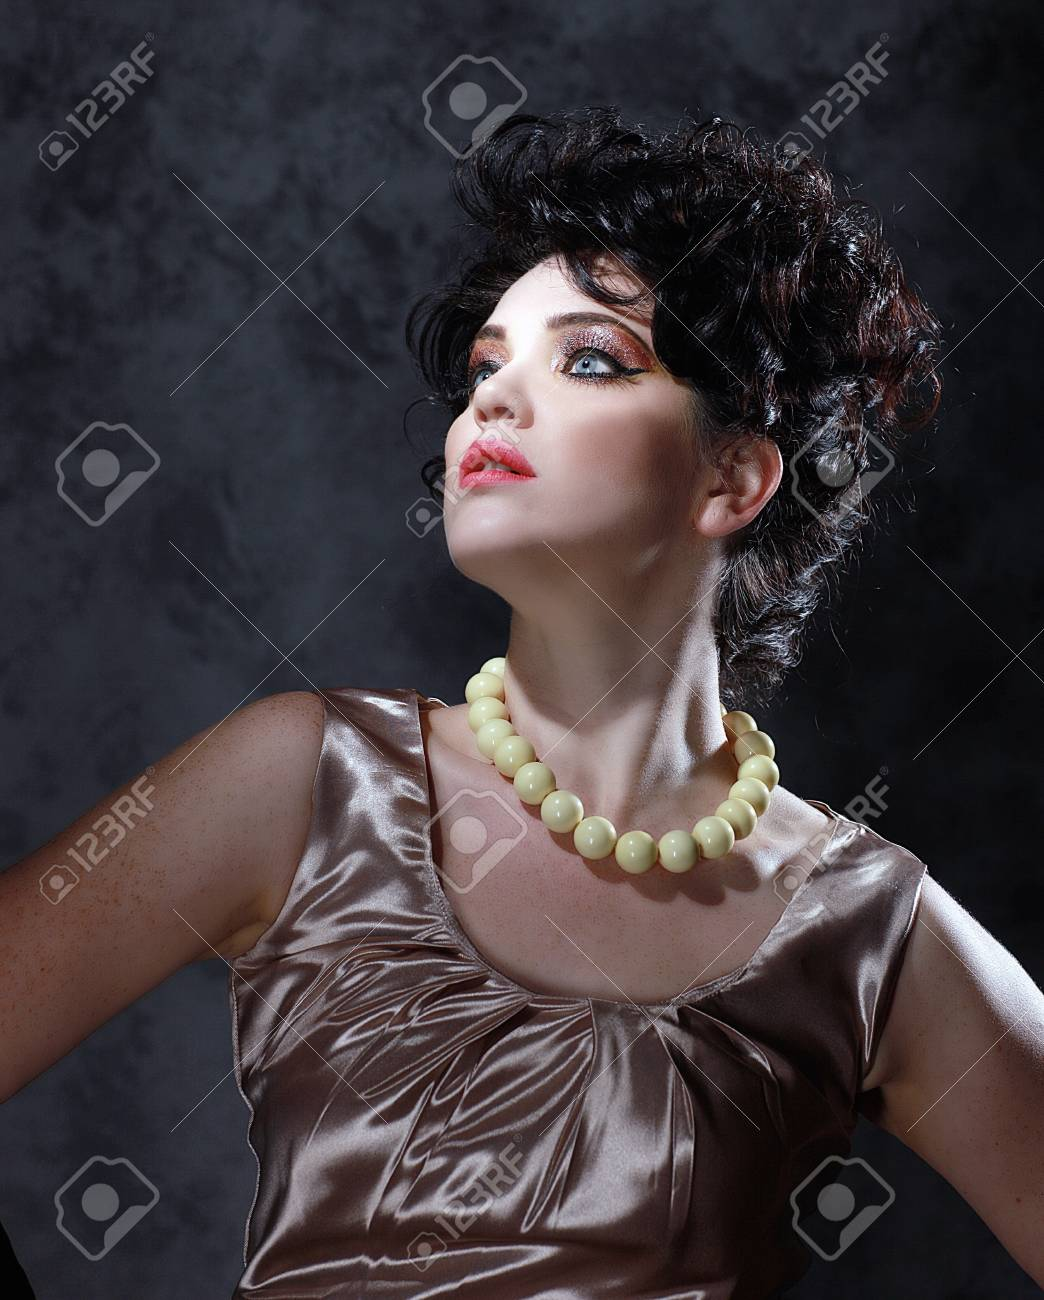 Stunning High Fashion Woman With Piercing Eyes Stock Photo - 15154317